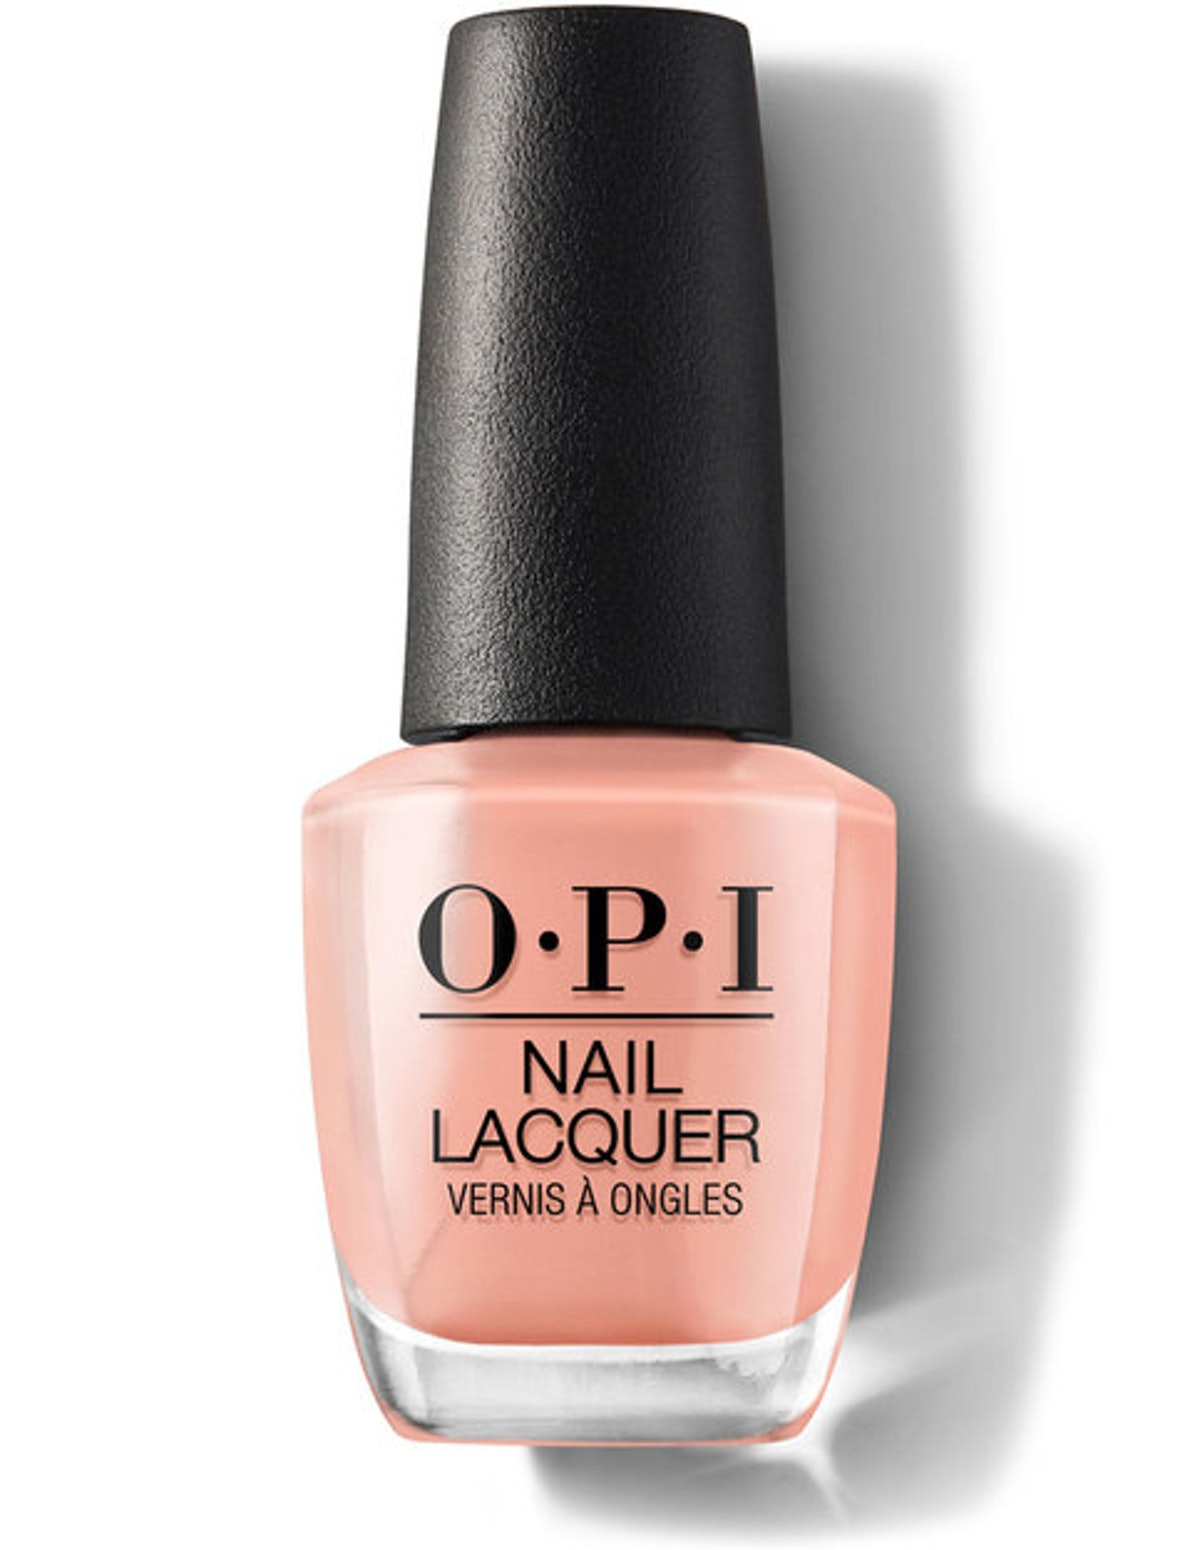 Nail Lacquer in A Great Opera-tunity